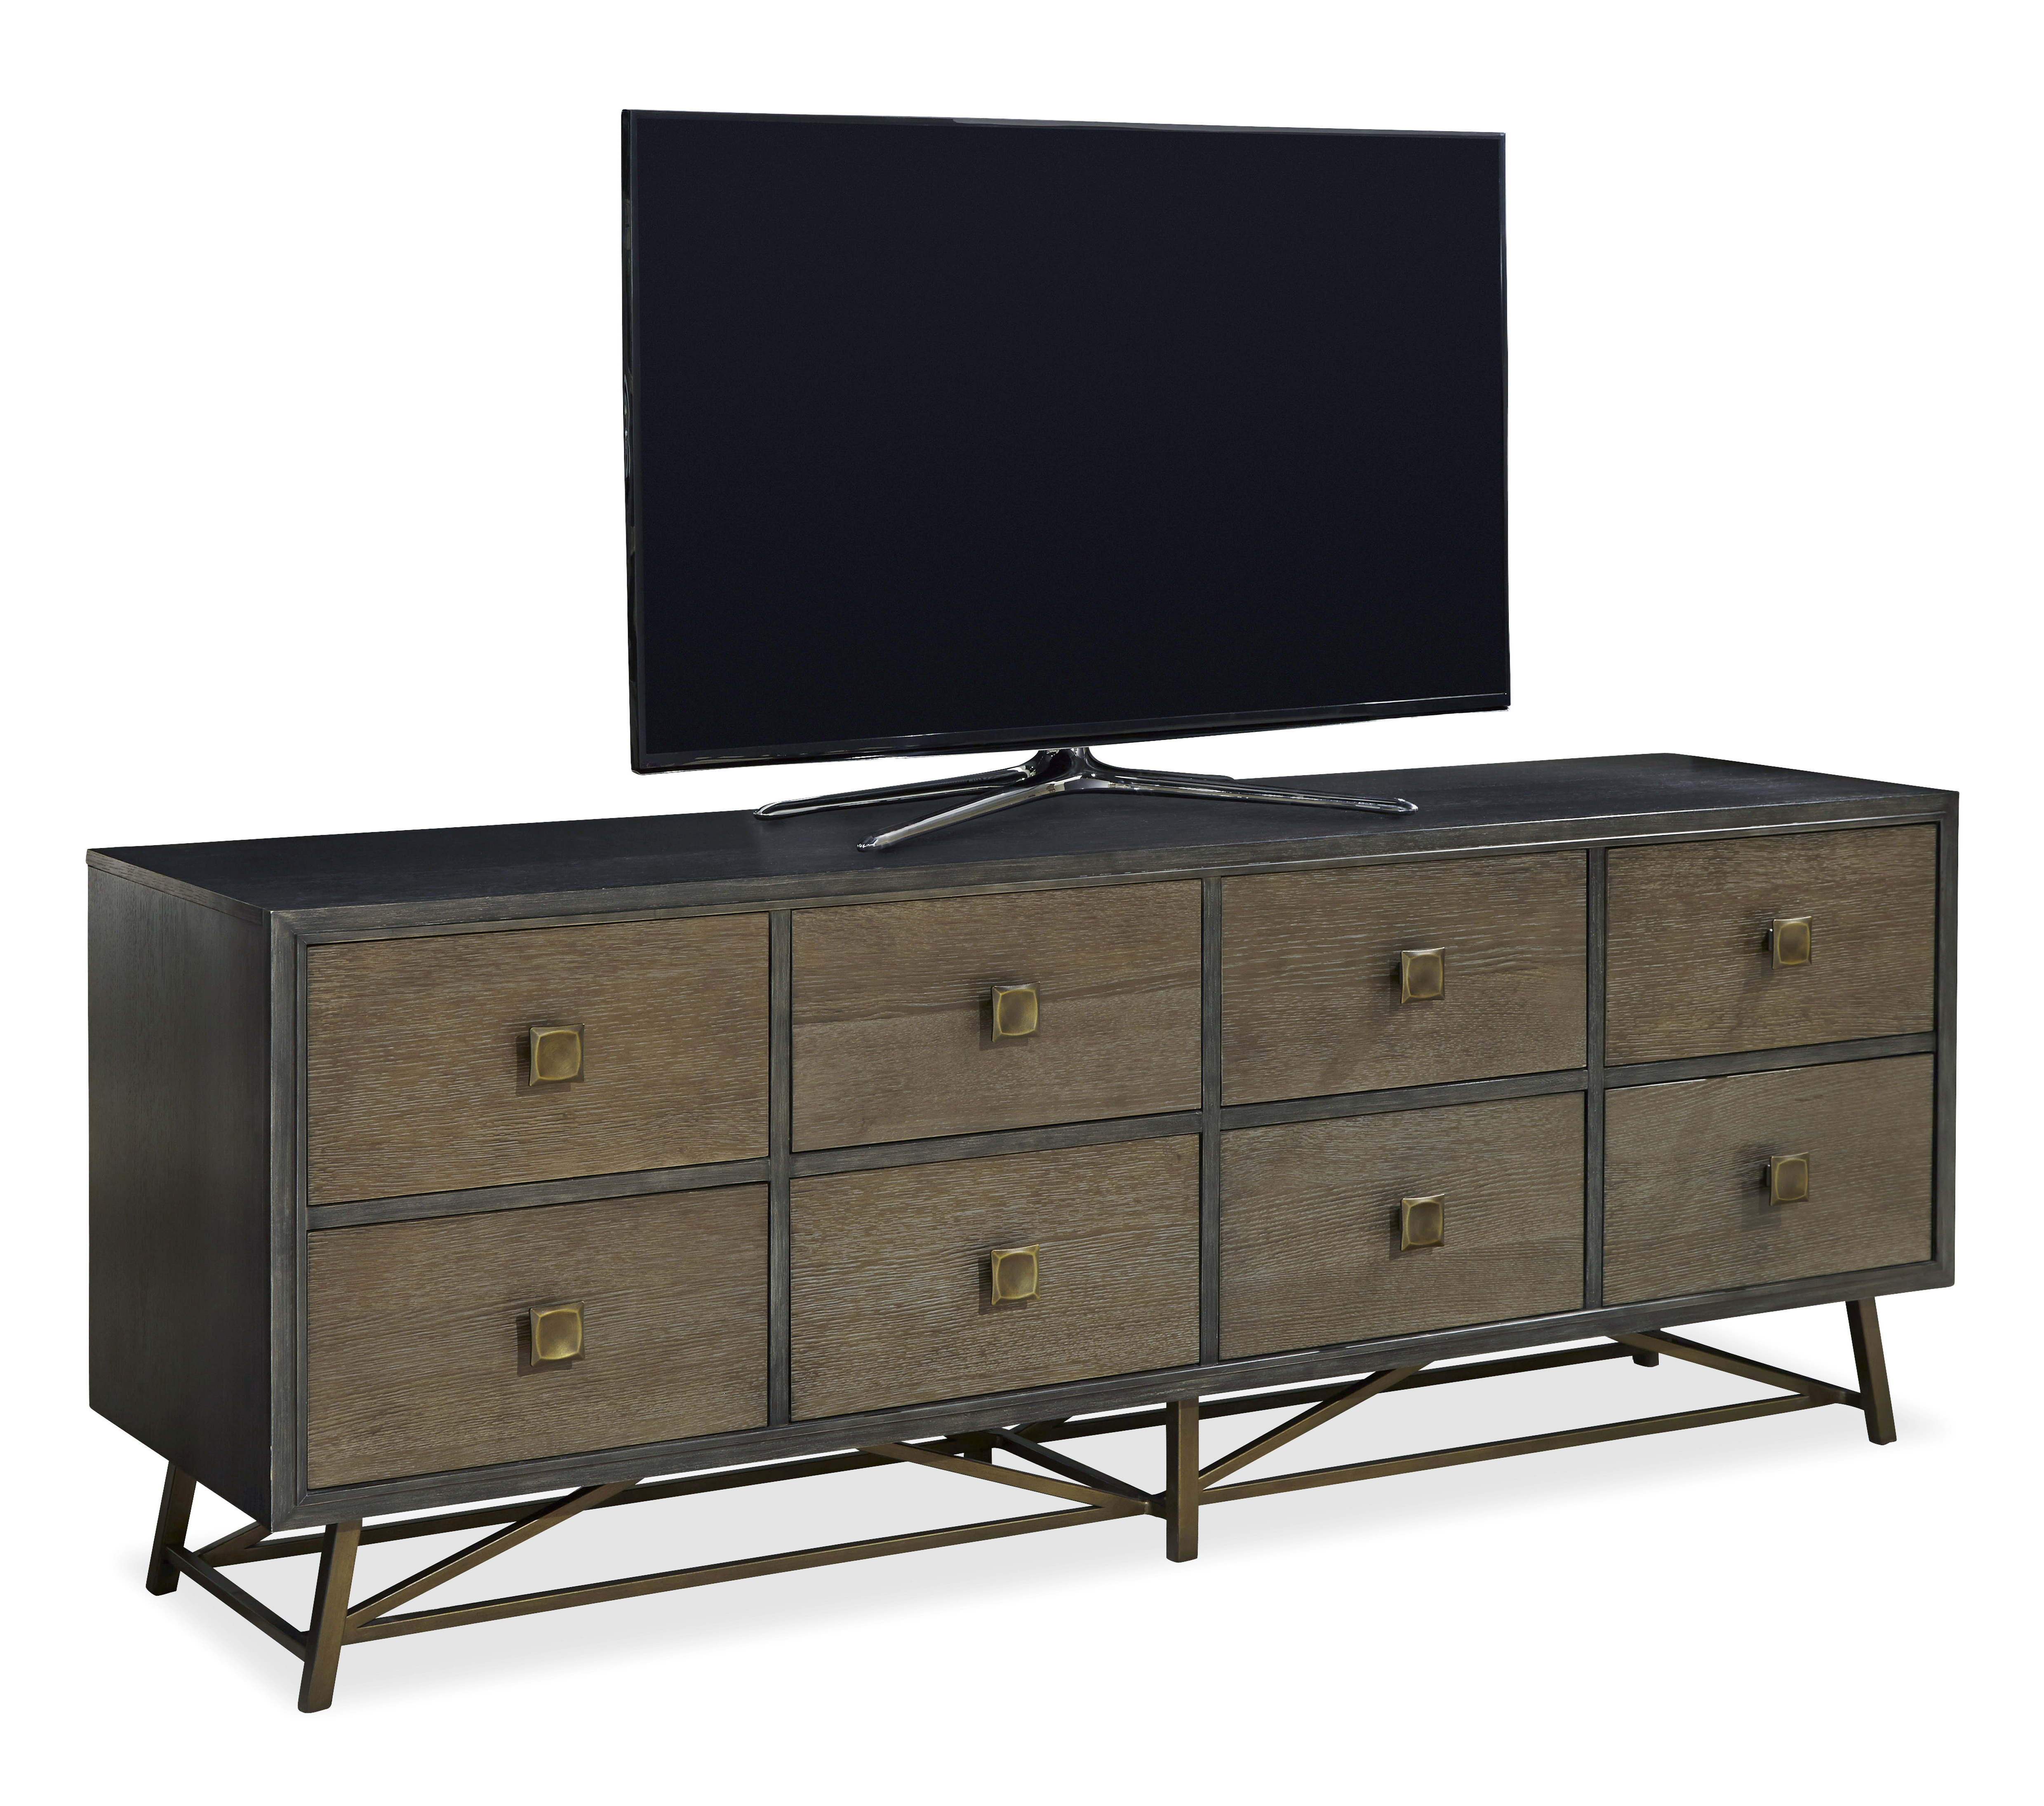 70 Inch Tv Stands | Joss & Main For Canyon 74 Inch Tv Stands (View 5 of 20)